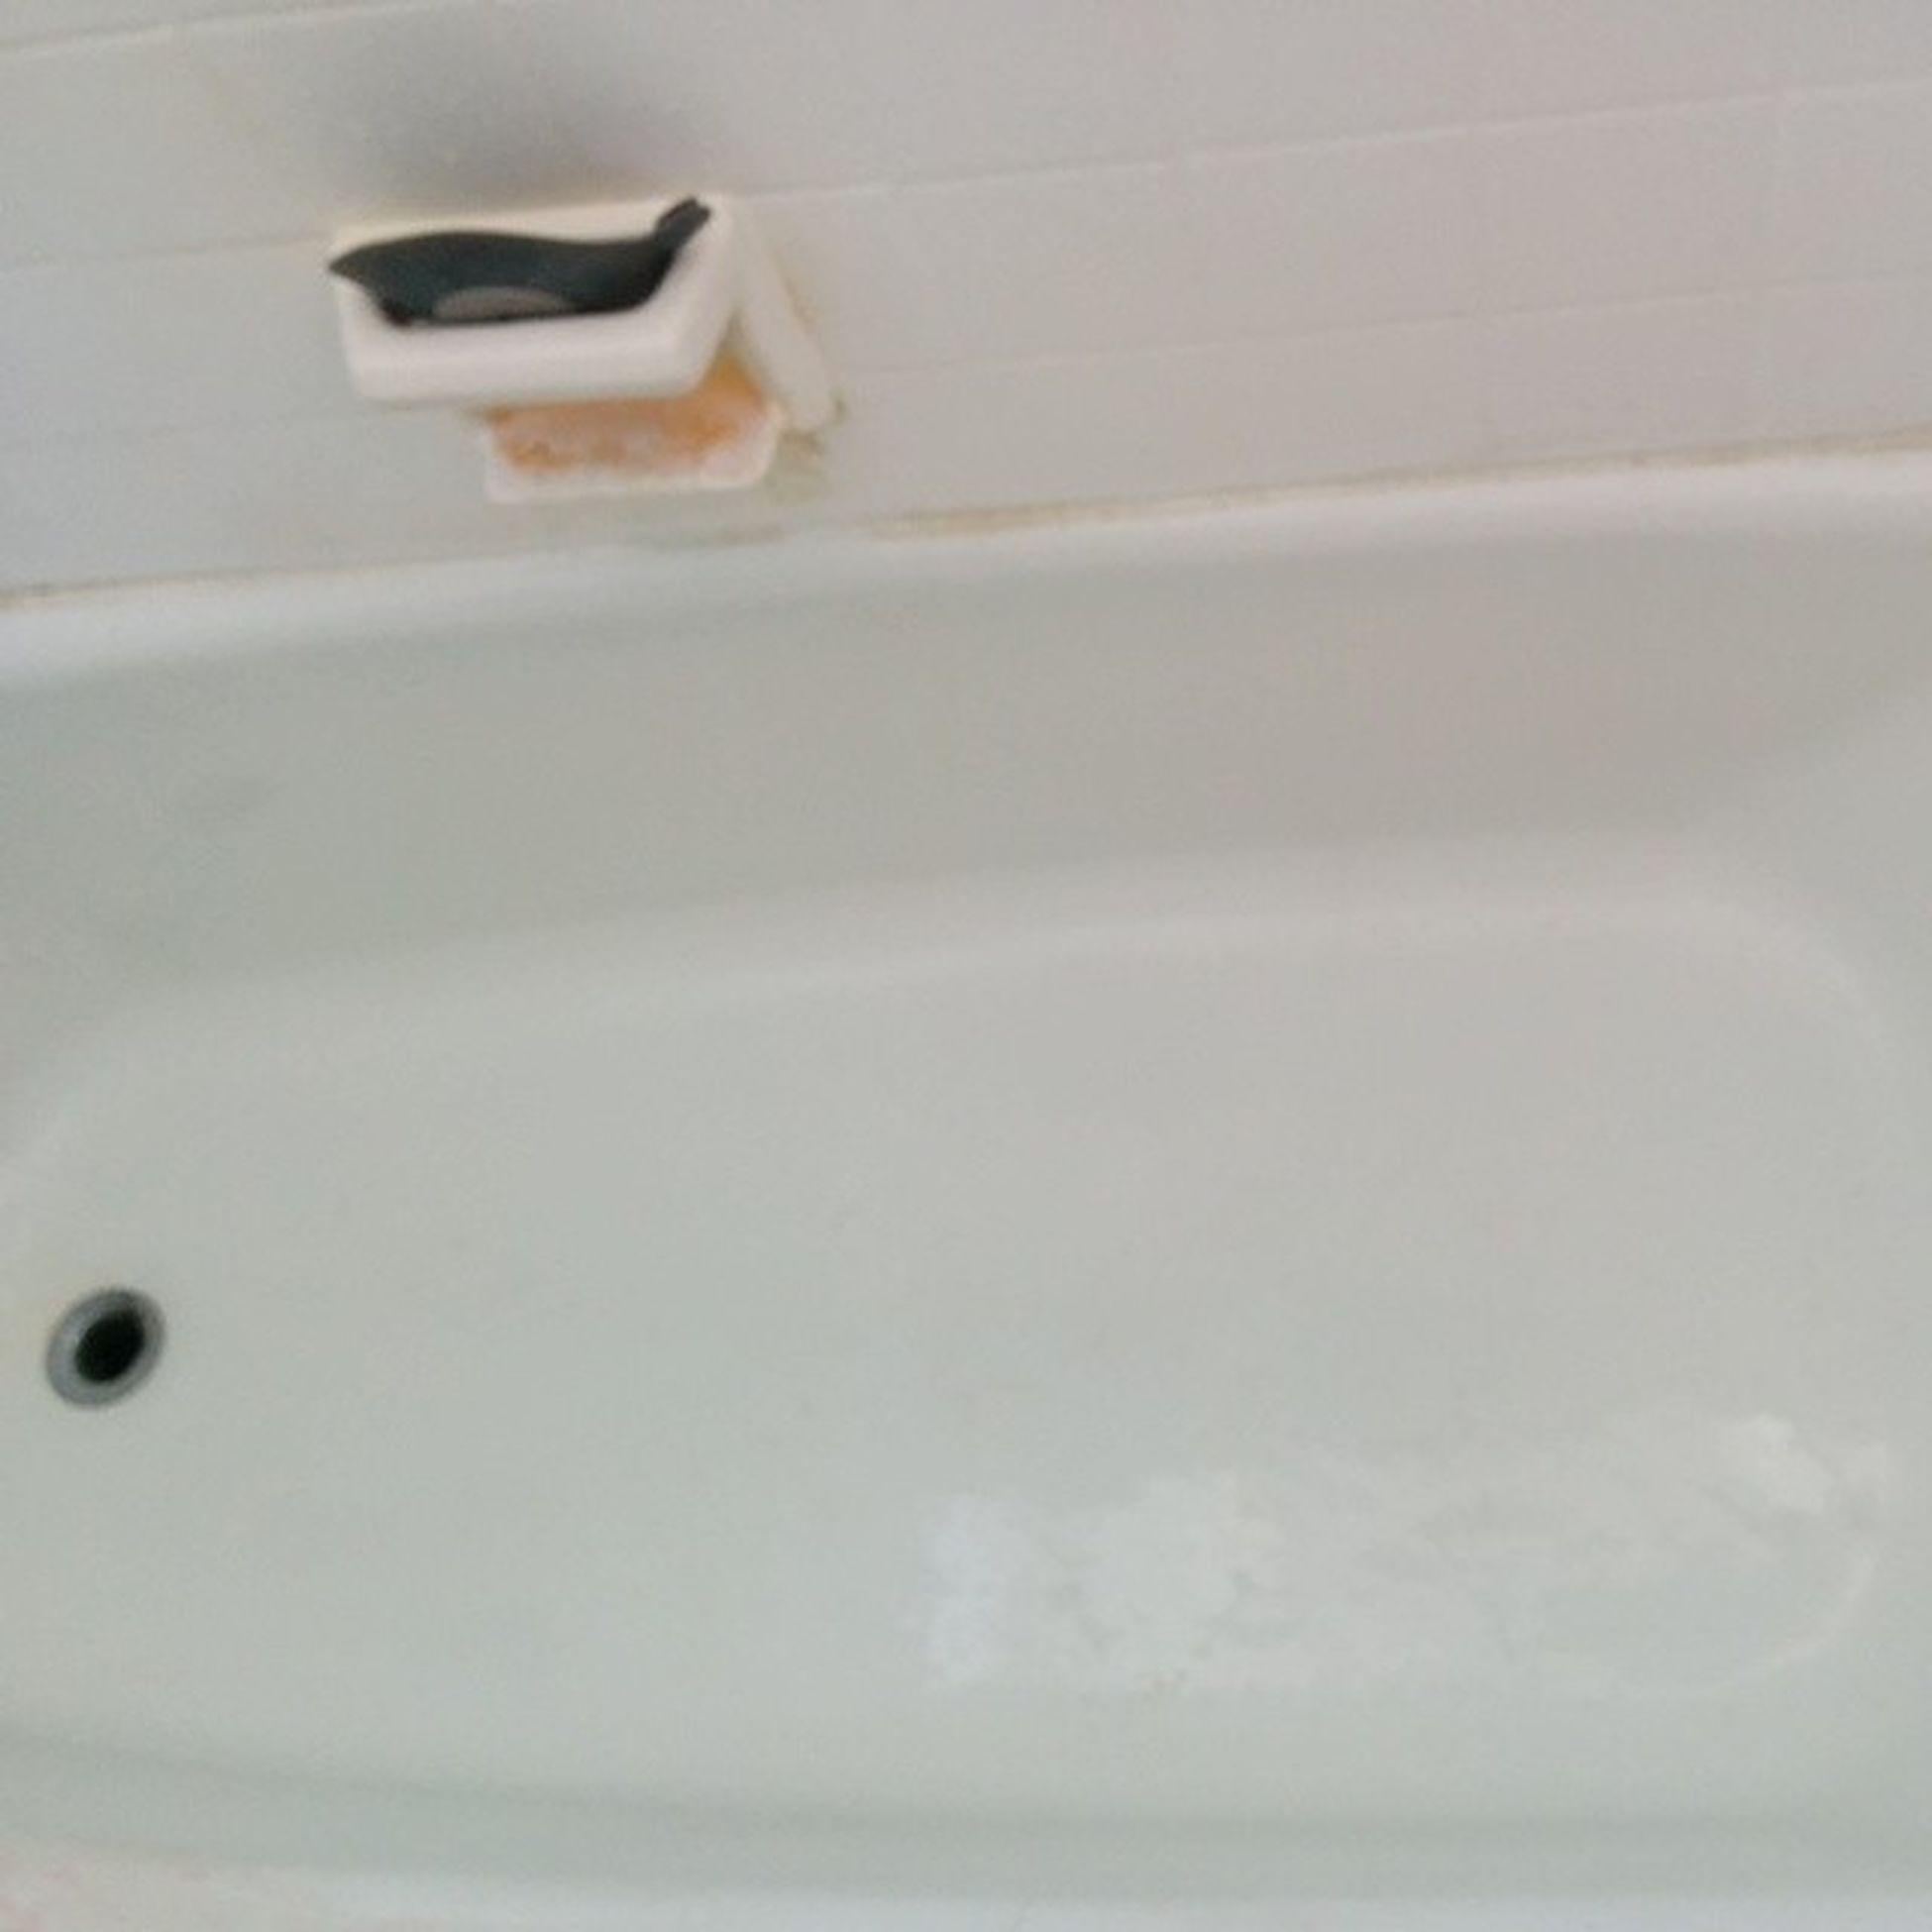 The bathtub that I spent thirty minutes scrubbing. And now it's clean! 100happydays Elbowgrease IUsedToHaveALife